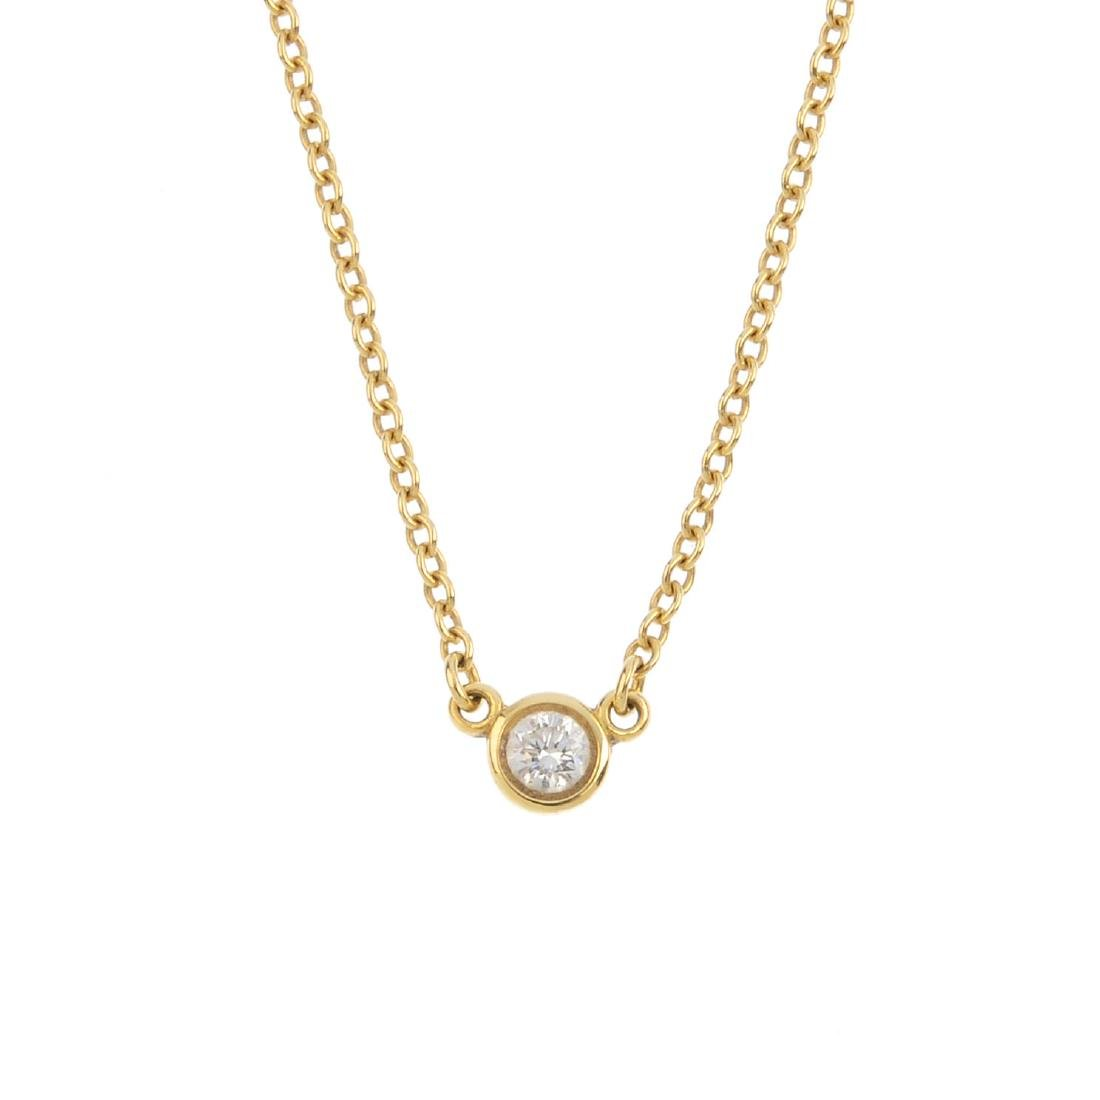 TIFFANY & CO. - a 'Diamond By The Yard' necklace. The